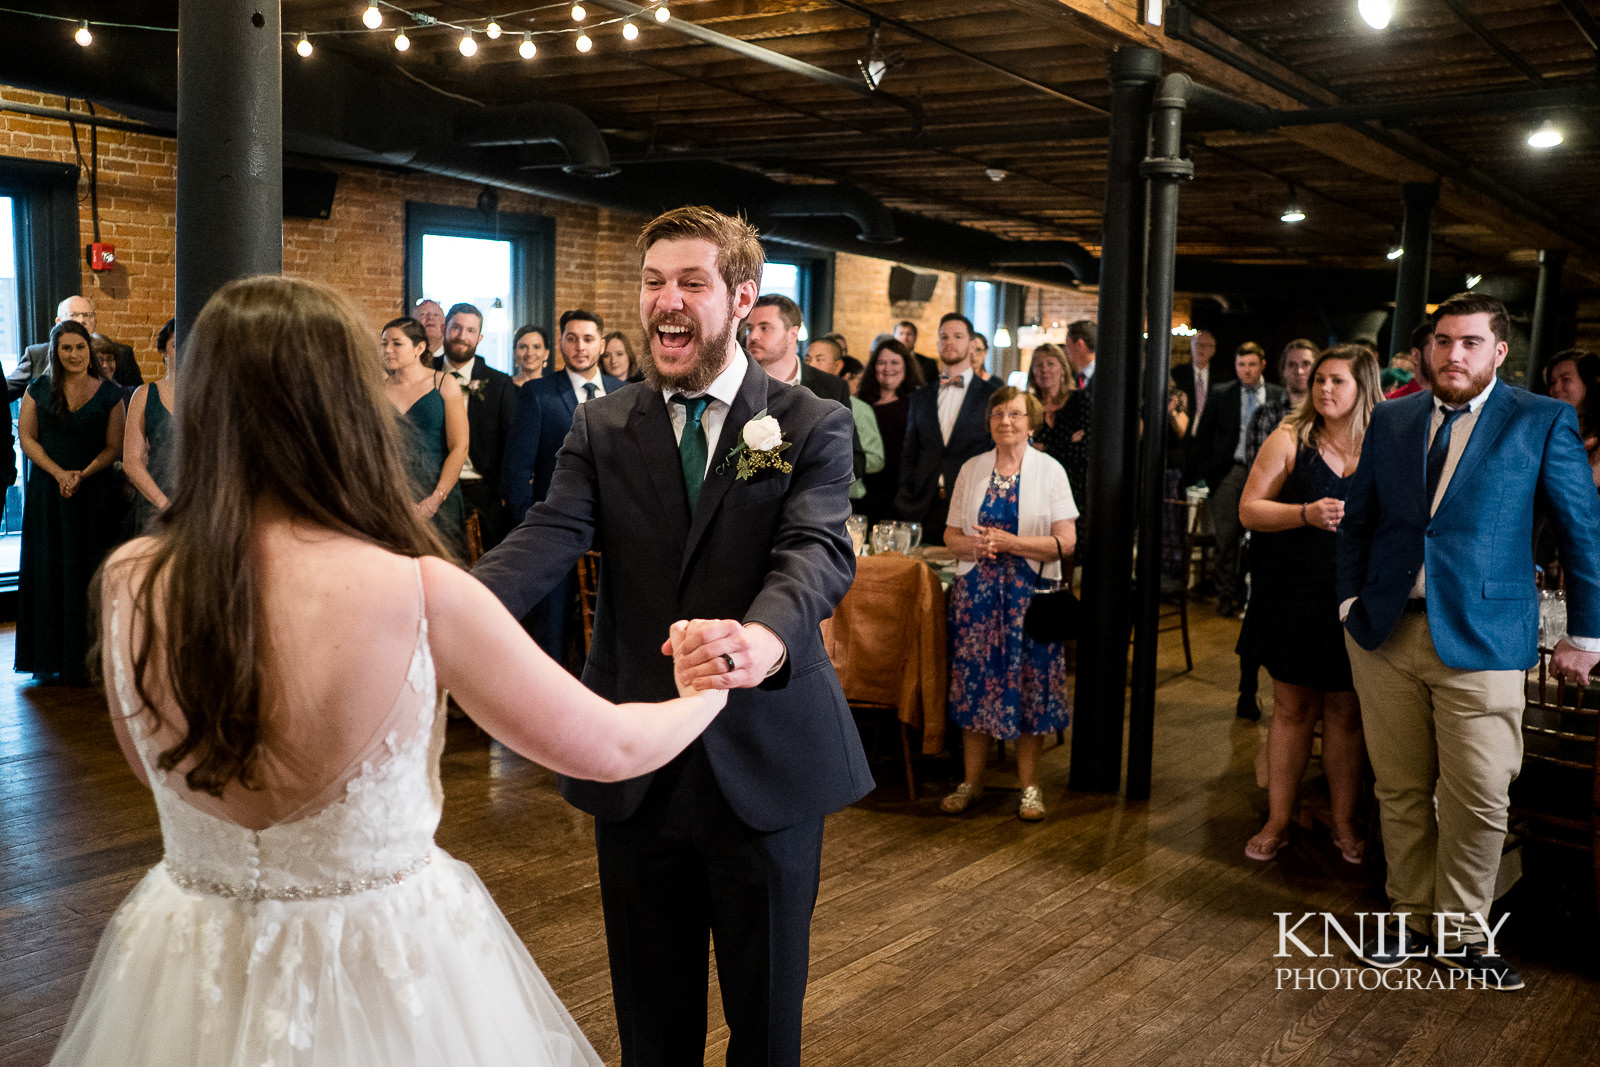 41-Pearl-St-Grill-Wedding-Reception-Buffalo-NY-Kniley-Photography.jpg